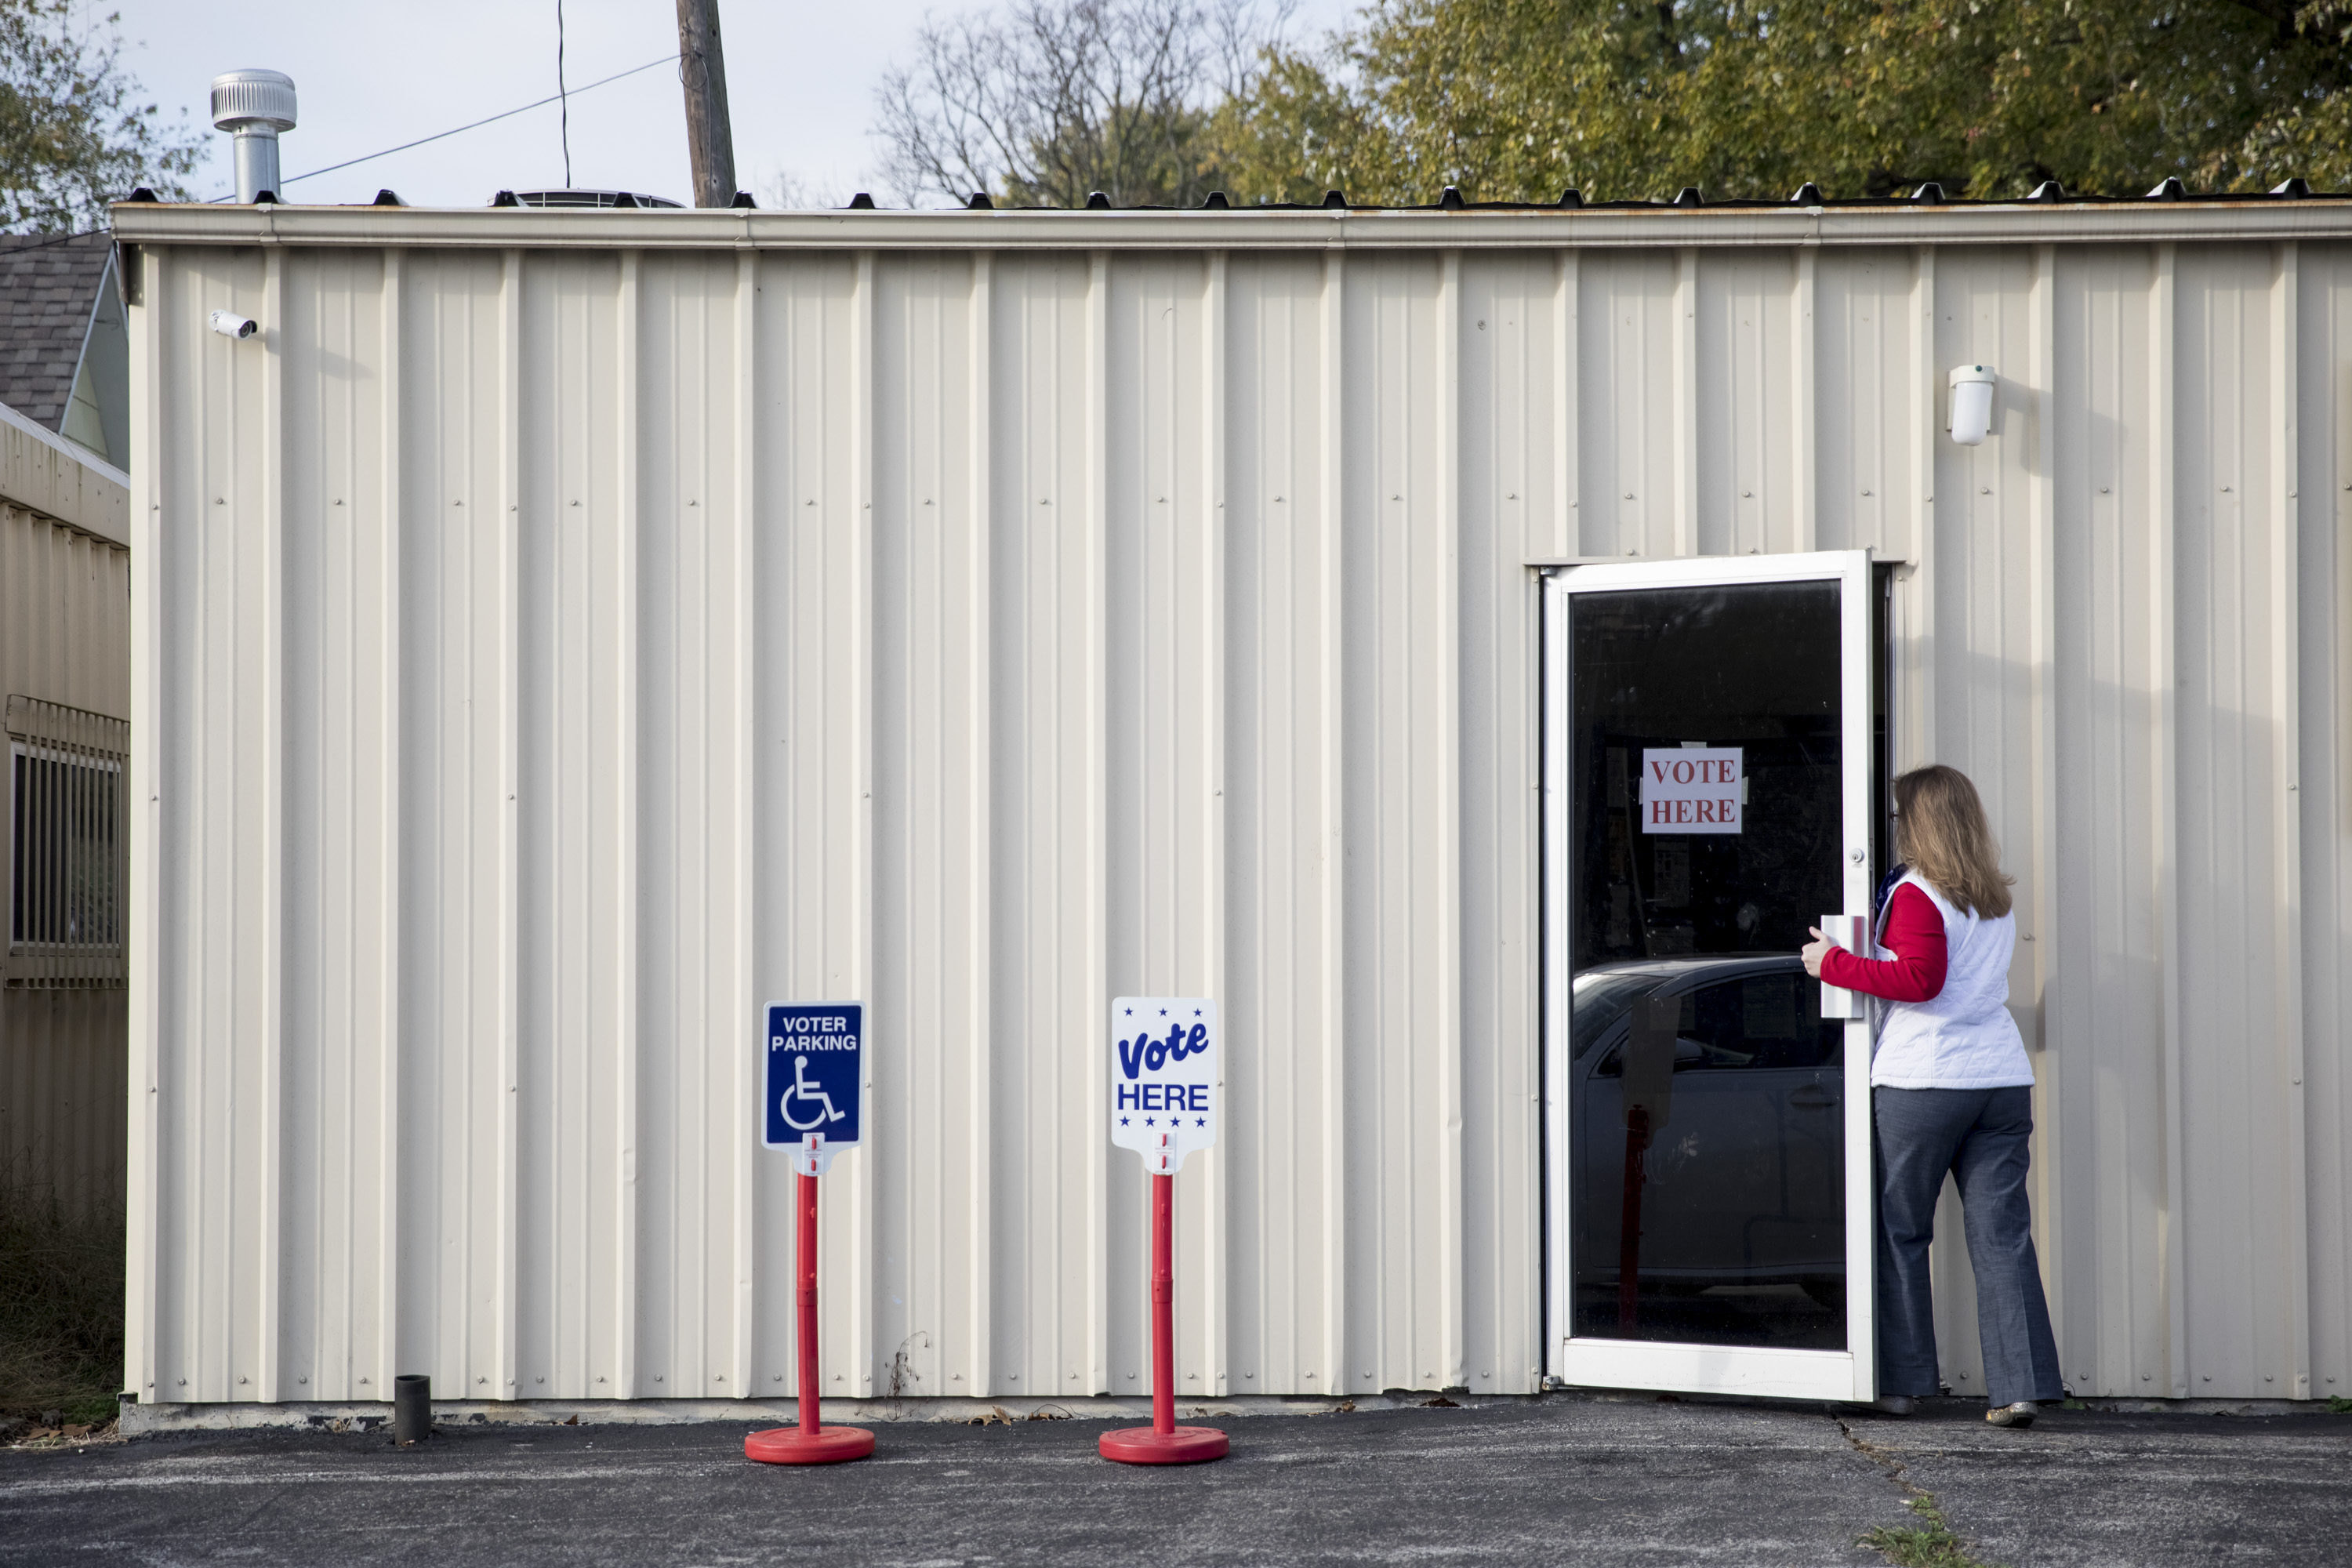 SIBLEY, MO - NOVEMBER 08: A voter enters their polling place on November 8, 2016 at Sibley Community Center in Sibley, Missouri, United States. (Photo by Whitney Curtis/Getty Images)